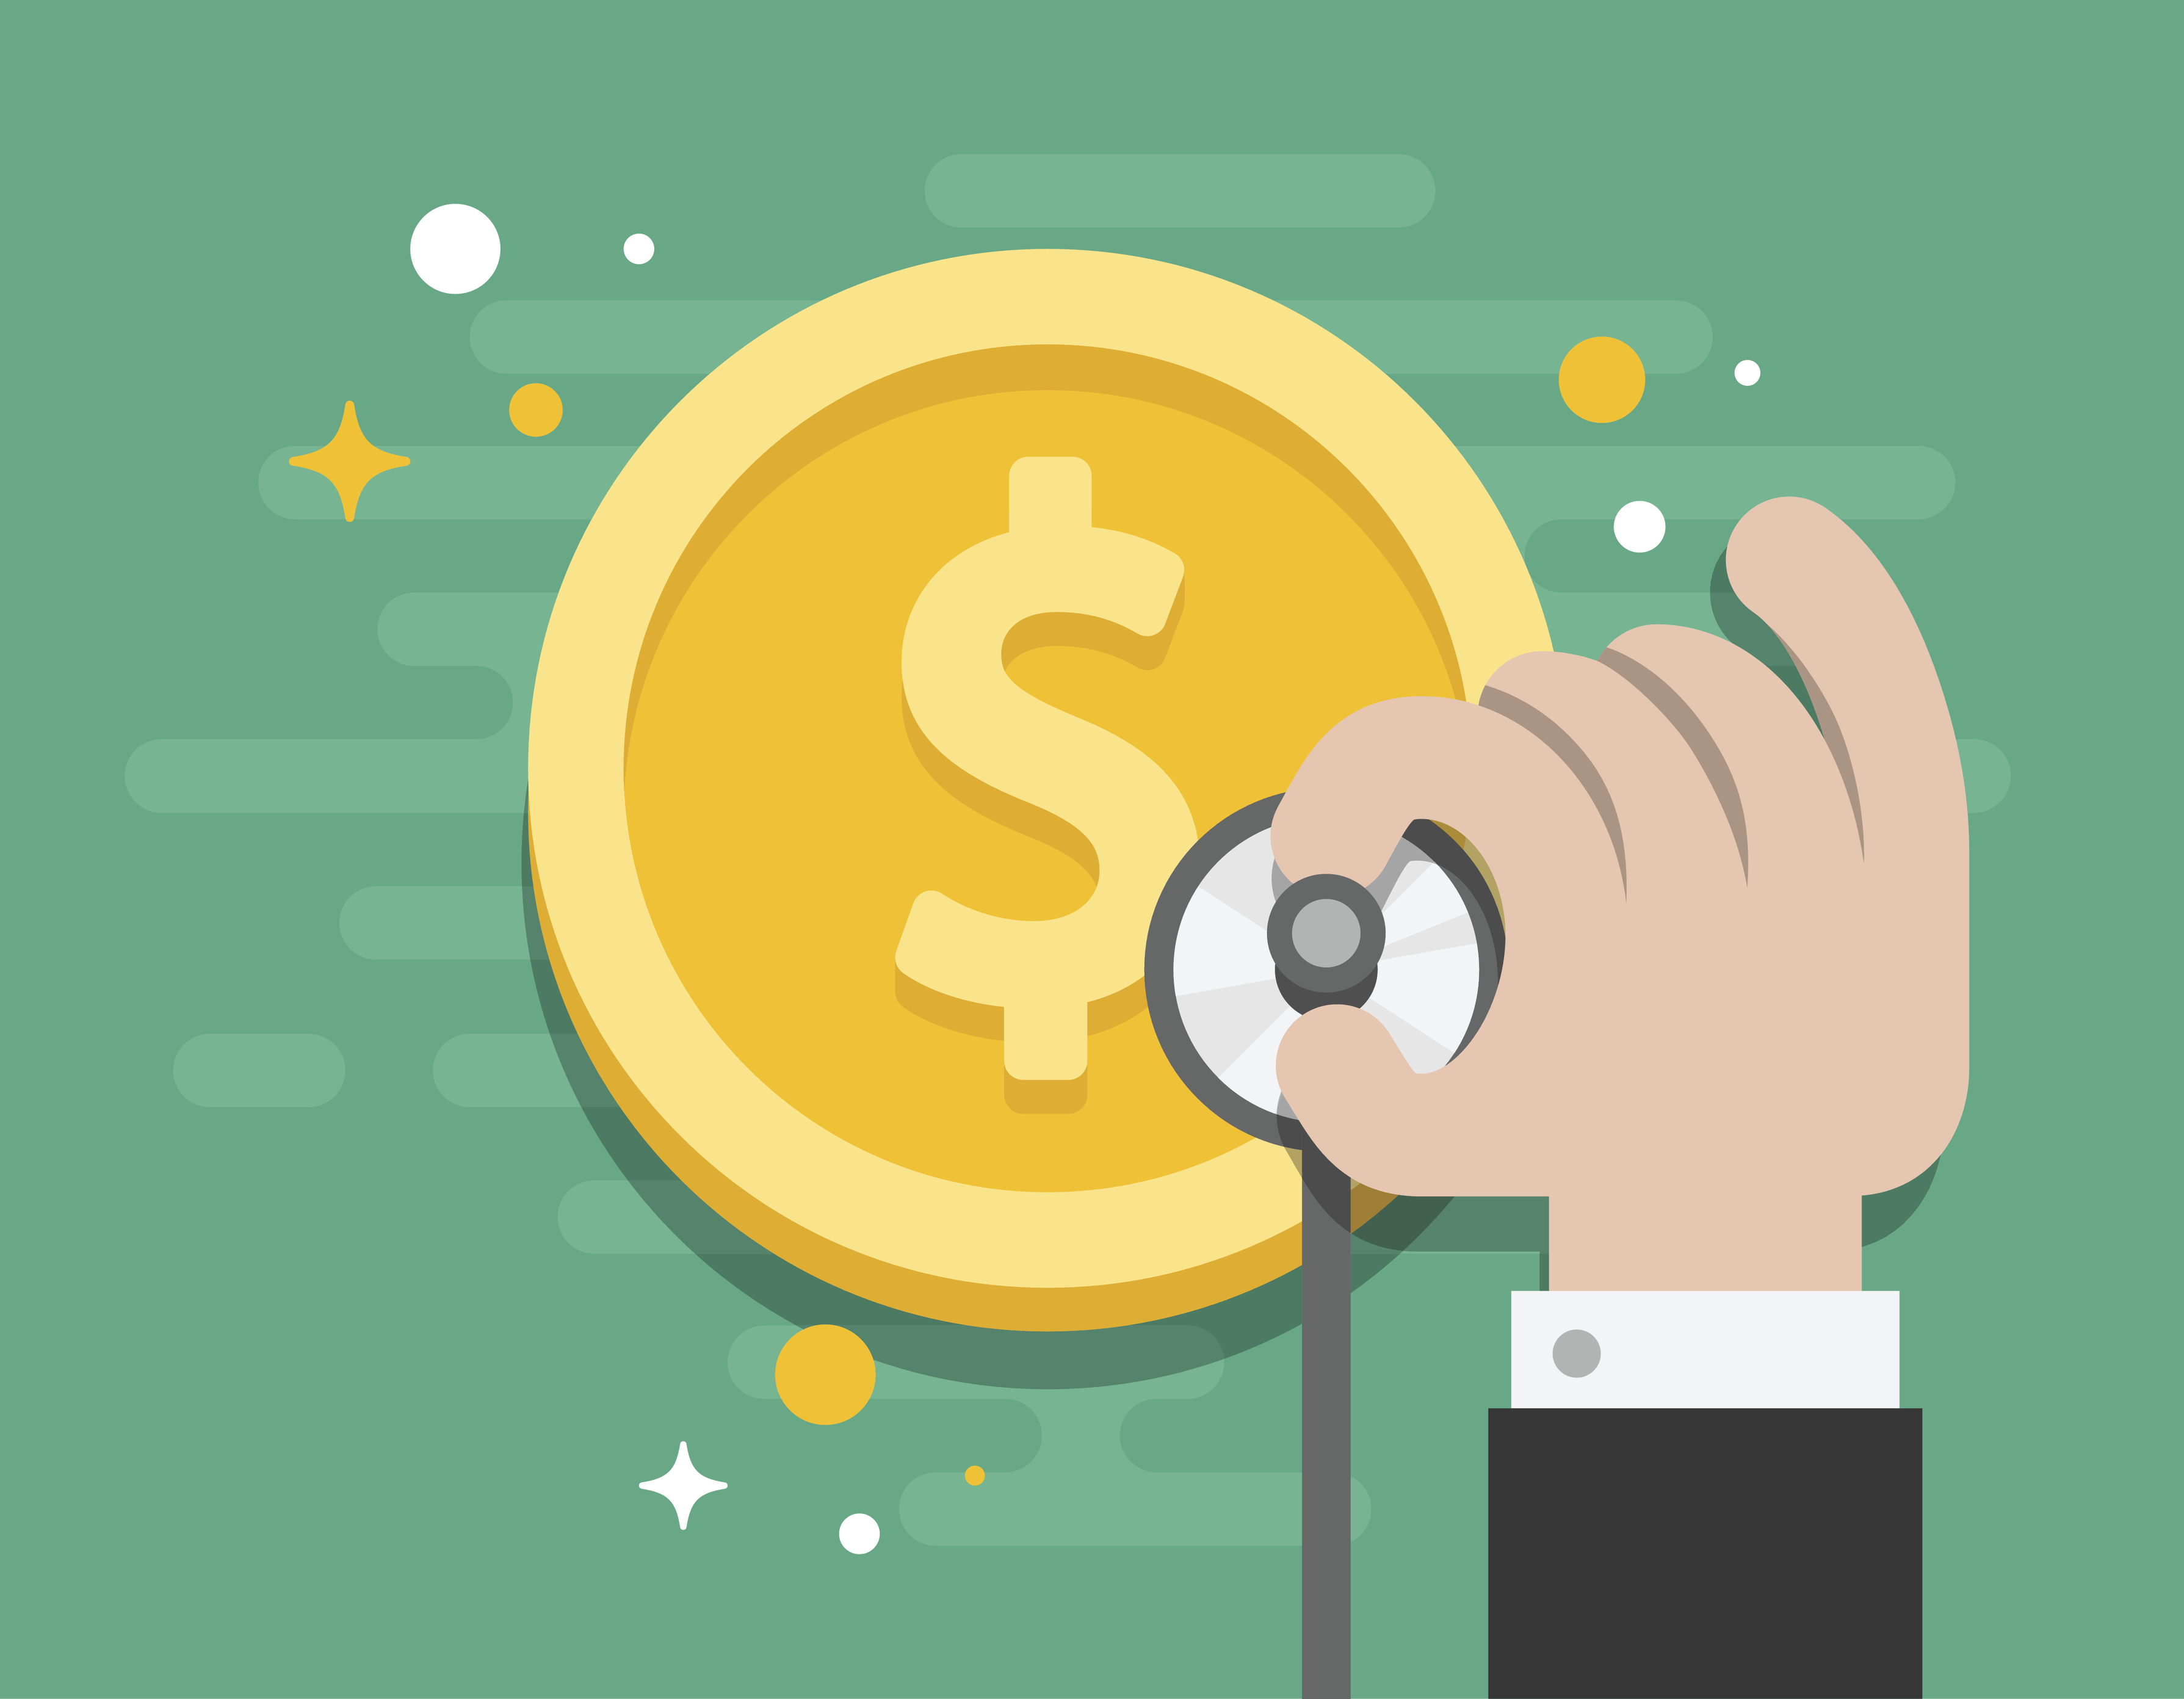 How To Maximize Revenue With Improved Claims Denials